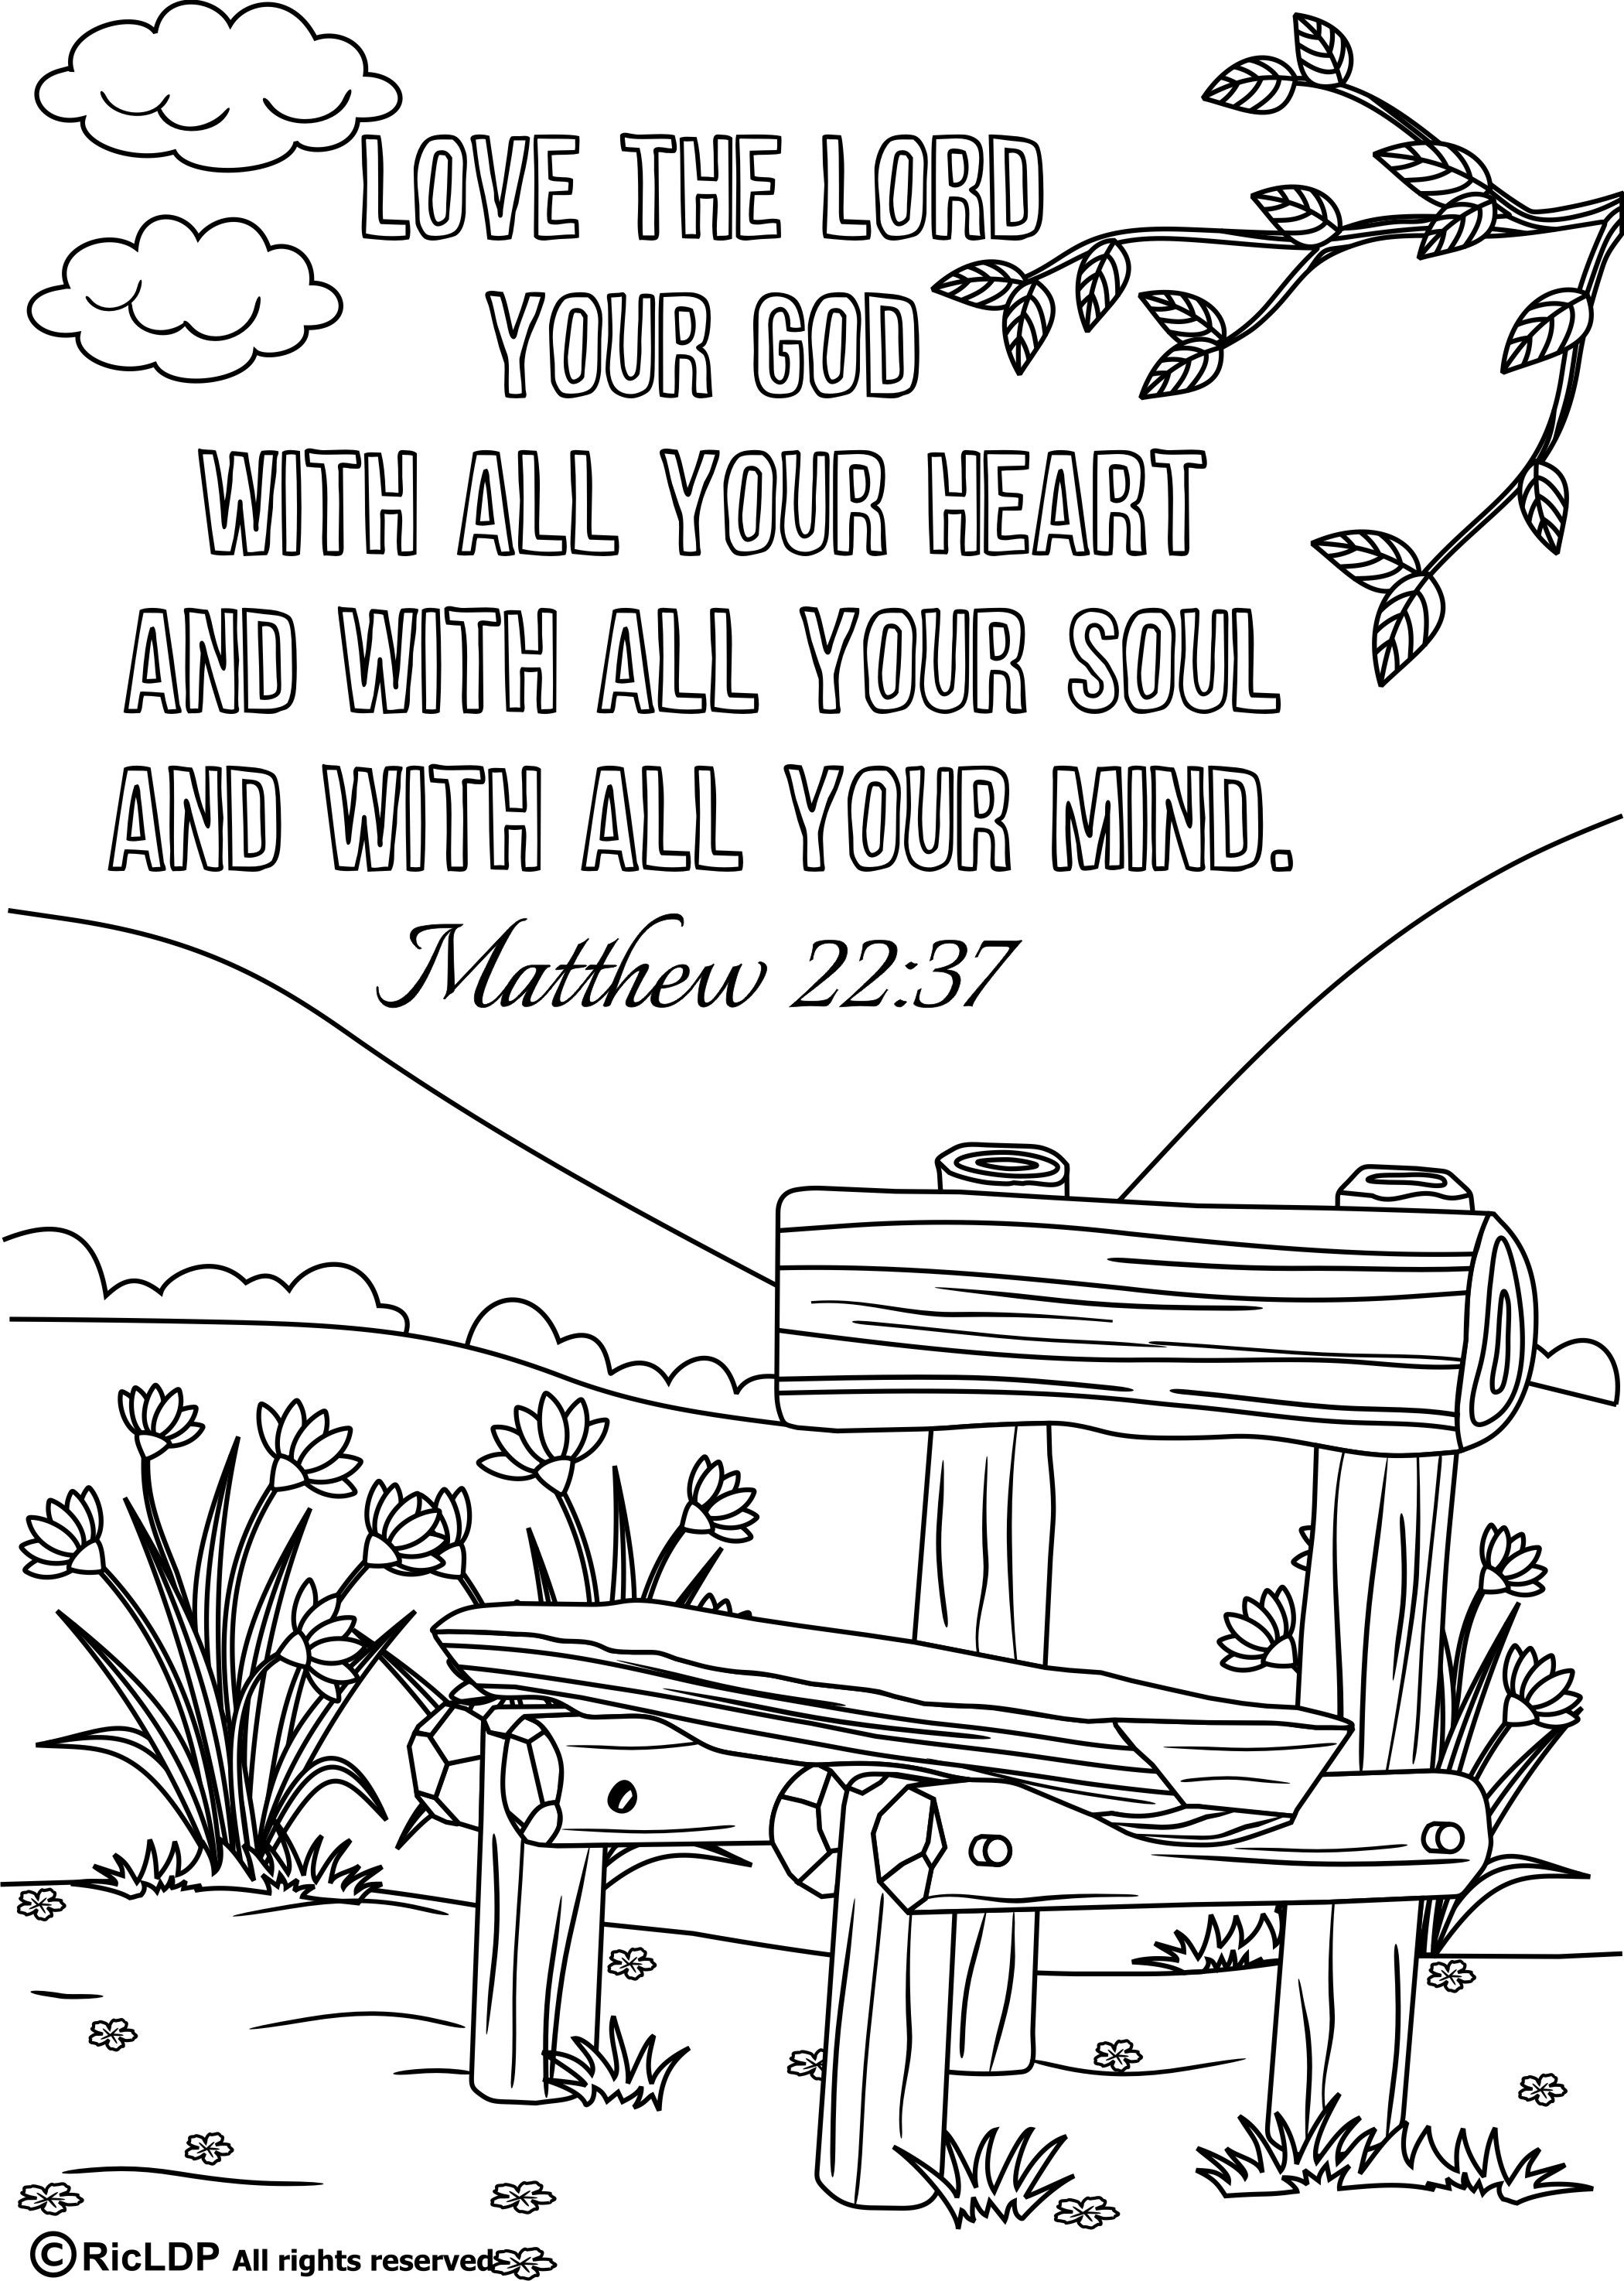 15 Bible Verses Coloring Pages | Christian Coloring Pages-NT ...